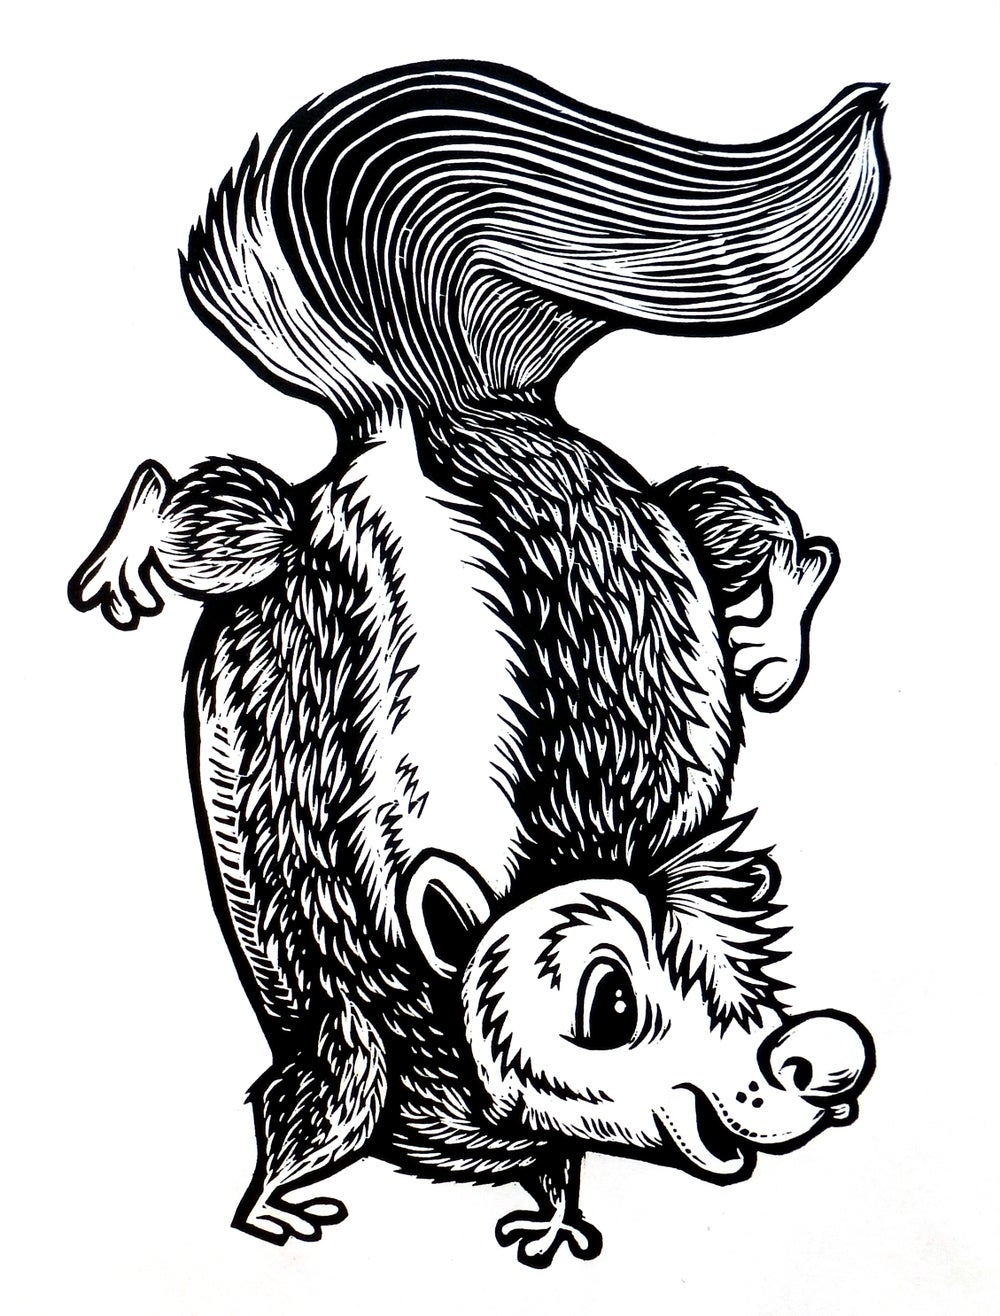 In our general direction Skunk (A1) T-shirt **FREE SHIPPING**